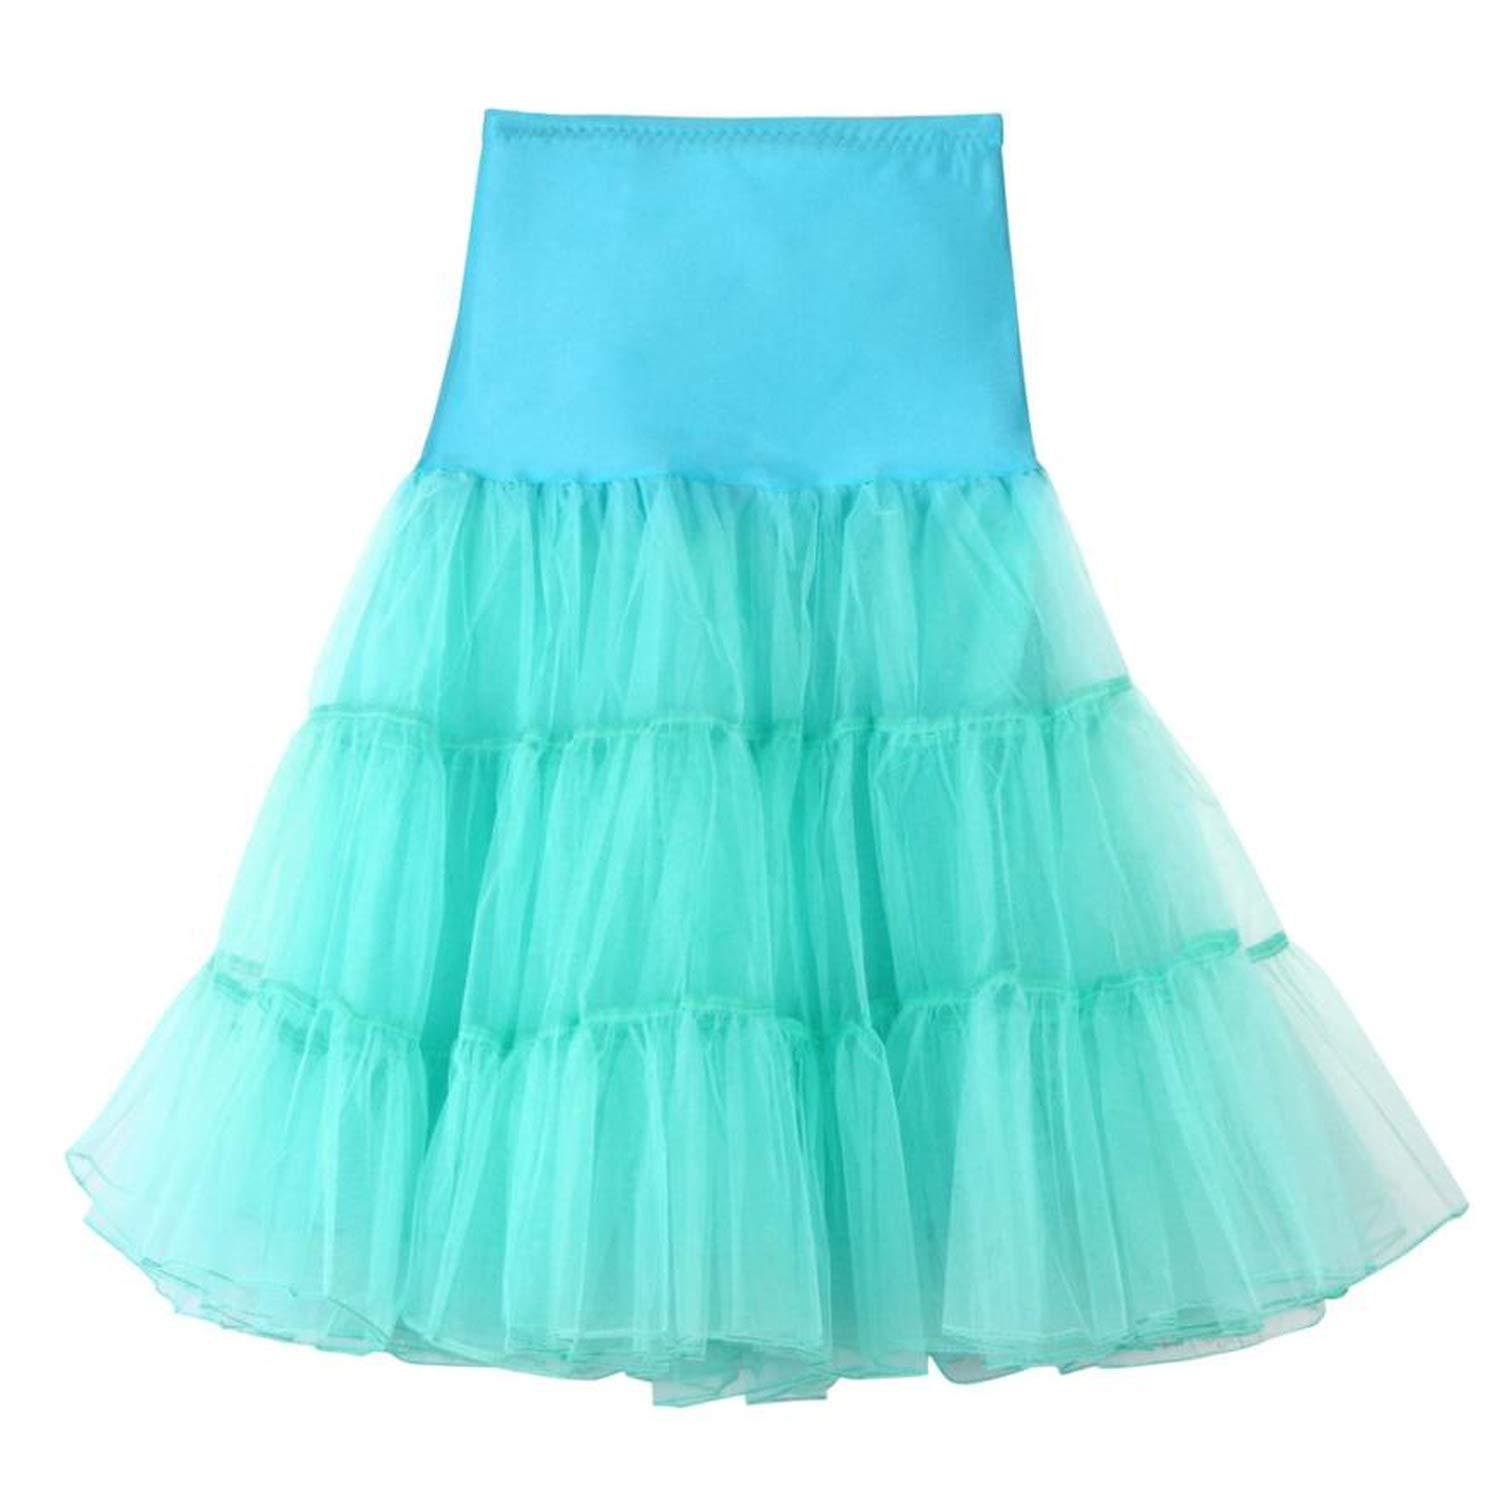 3169ec93d5 rather be Newly Skirts High Waist Pleated Short Skirt Adult Tutu Dancing  Skirt,Mint Green,M: Amazon.ca: Clothing & Accessories